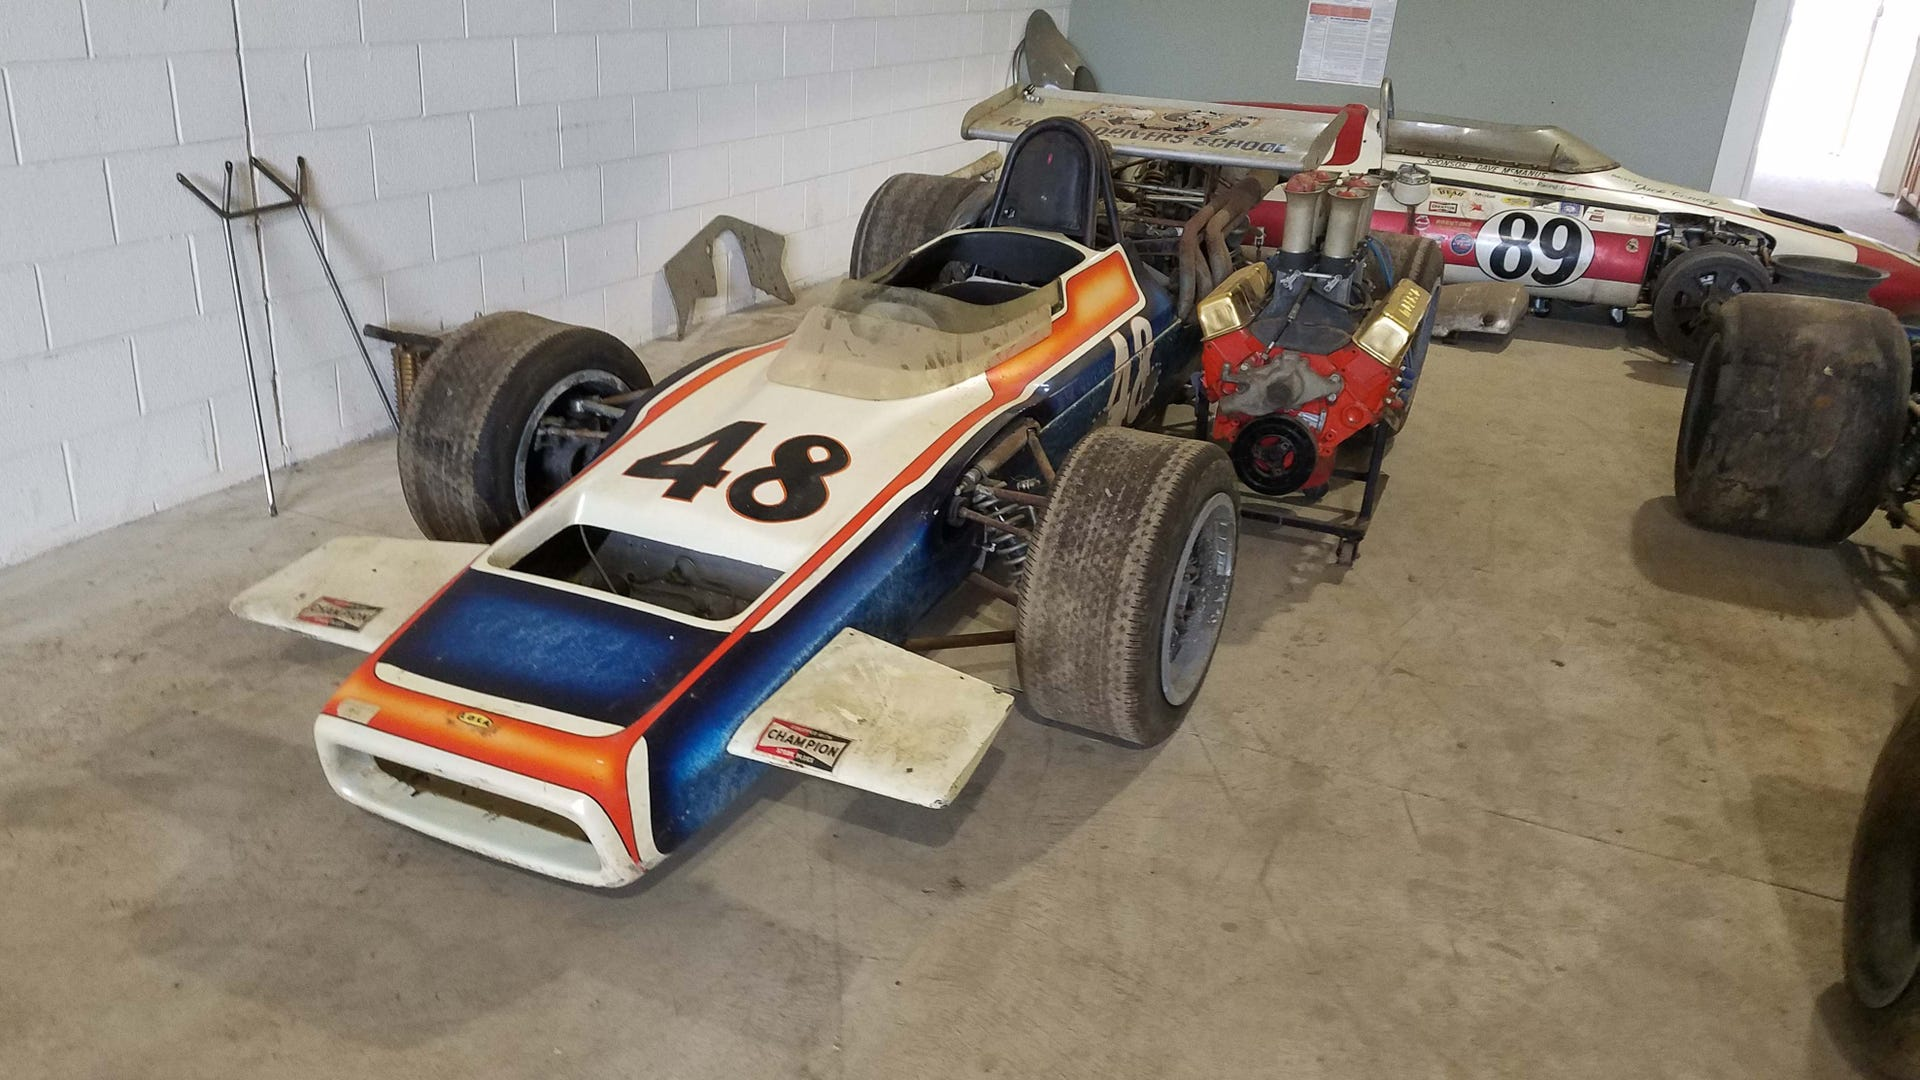 """Jack """"The Brighton Bandit"""" Conely's race cars being auctioned 9969a5d5-5b4e-4fb5-aa25-8dfe3c11f4d0-conely_48-indy_car"""